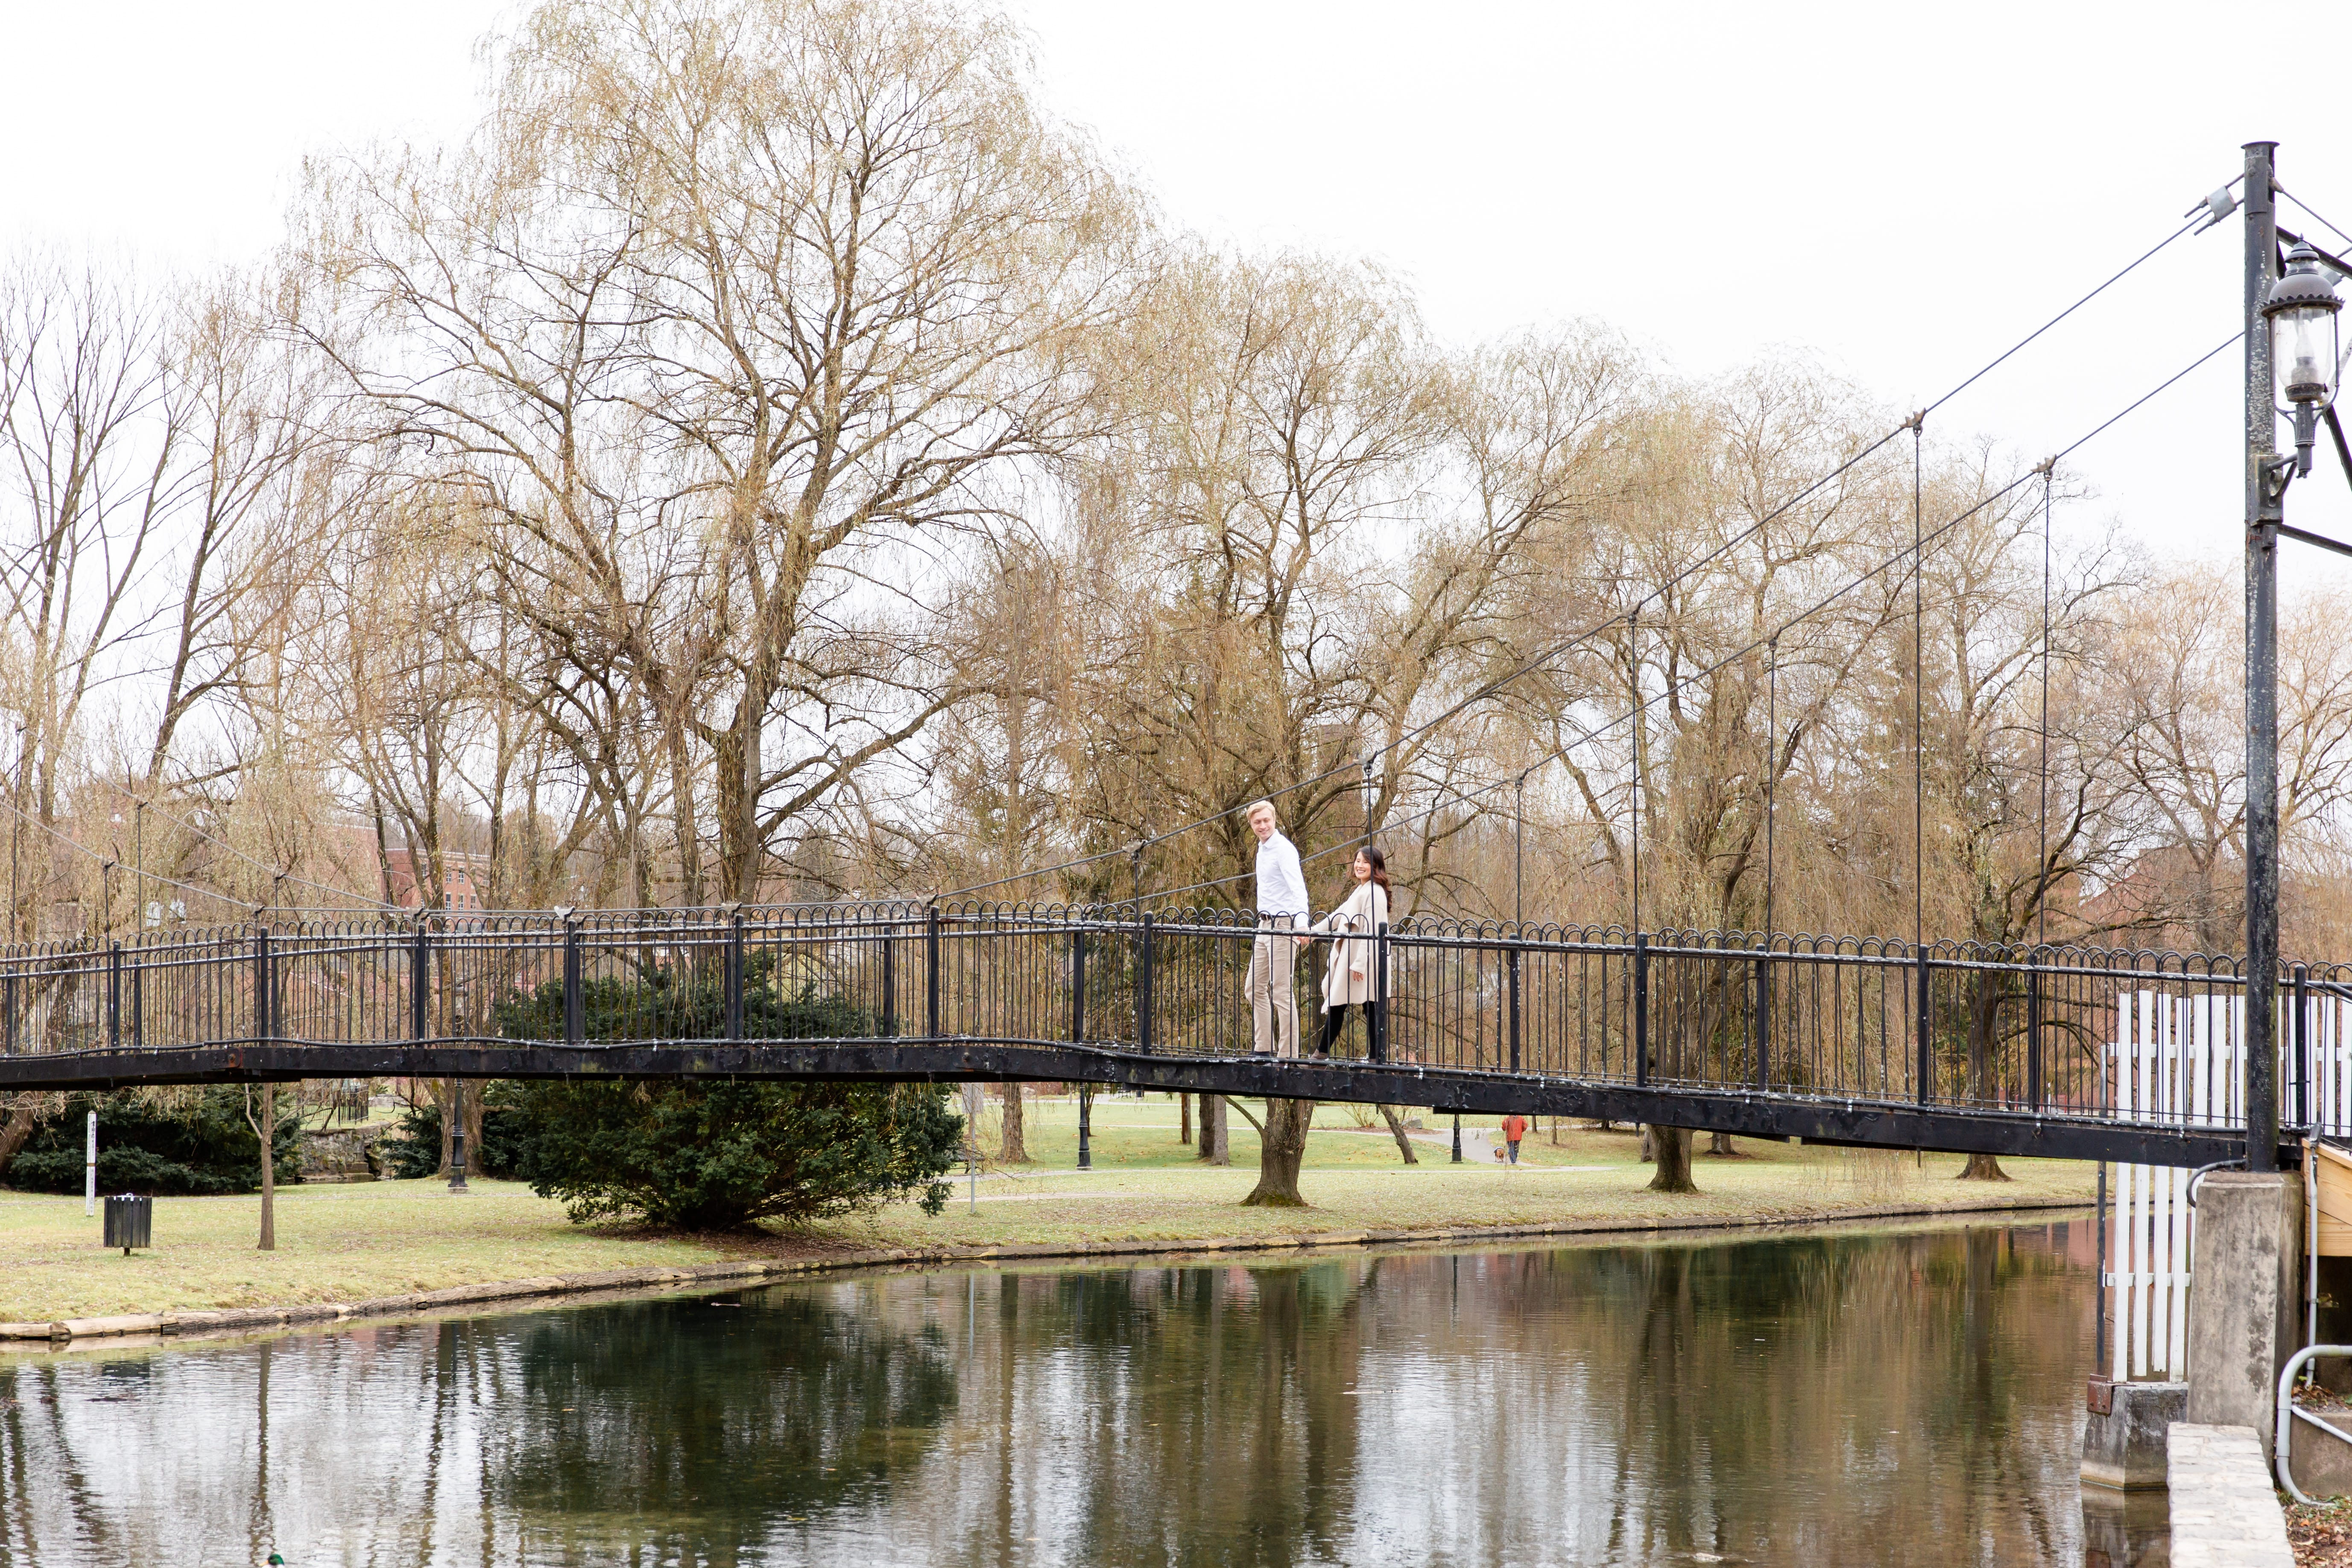 Engaged couple crossing the bridge at Talleyrand Park in Bellefonte